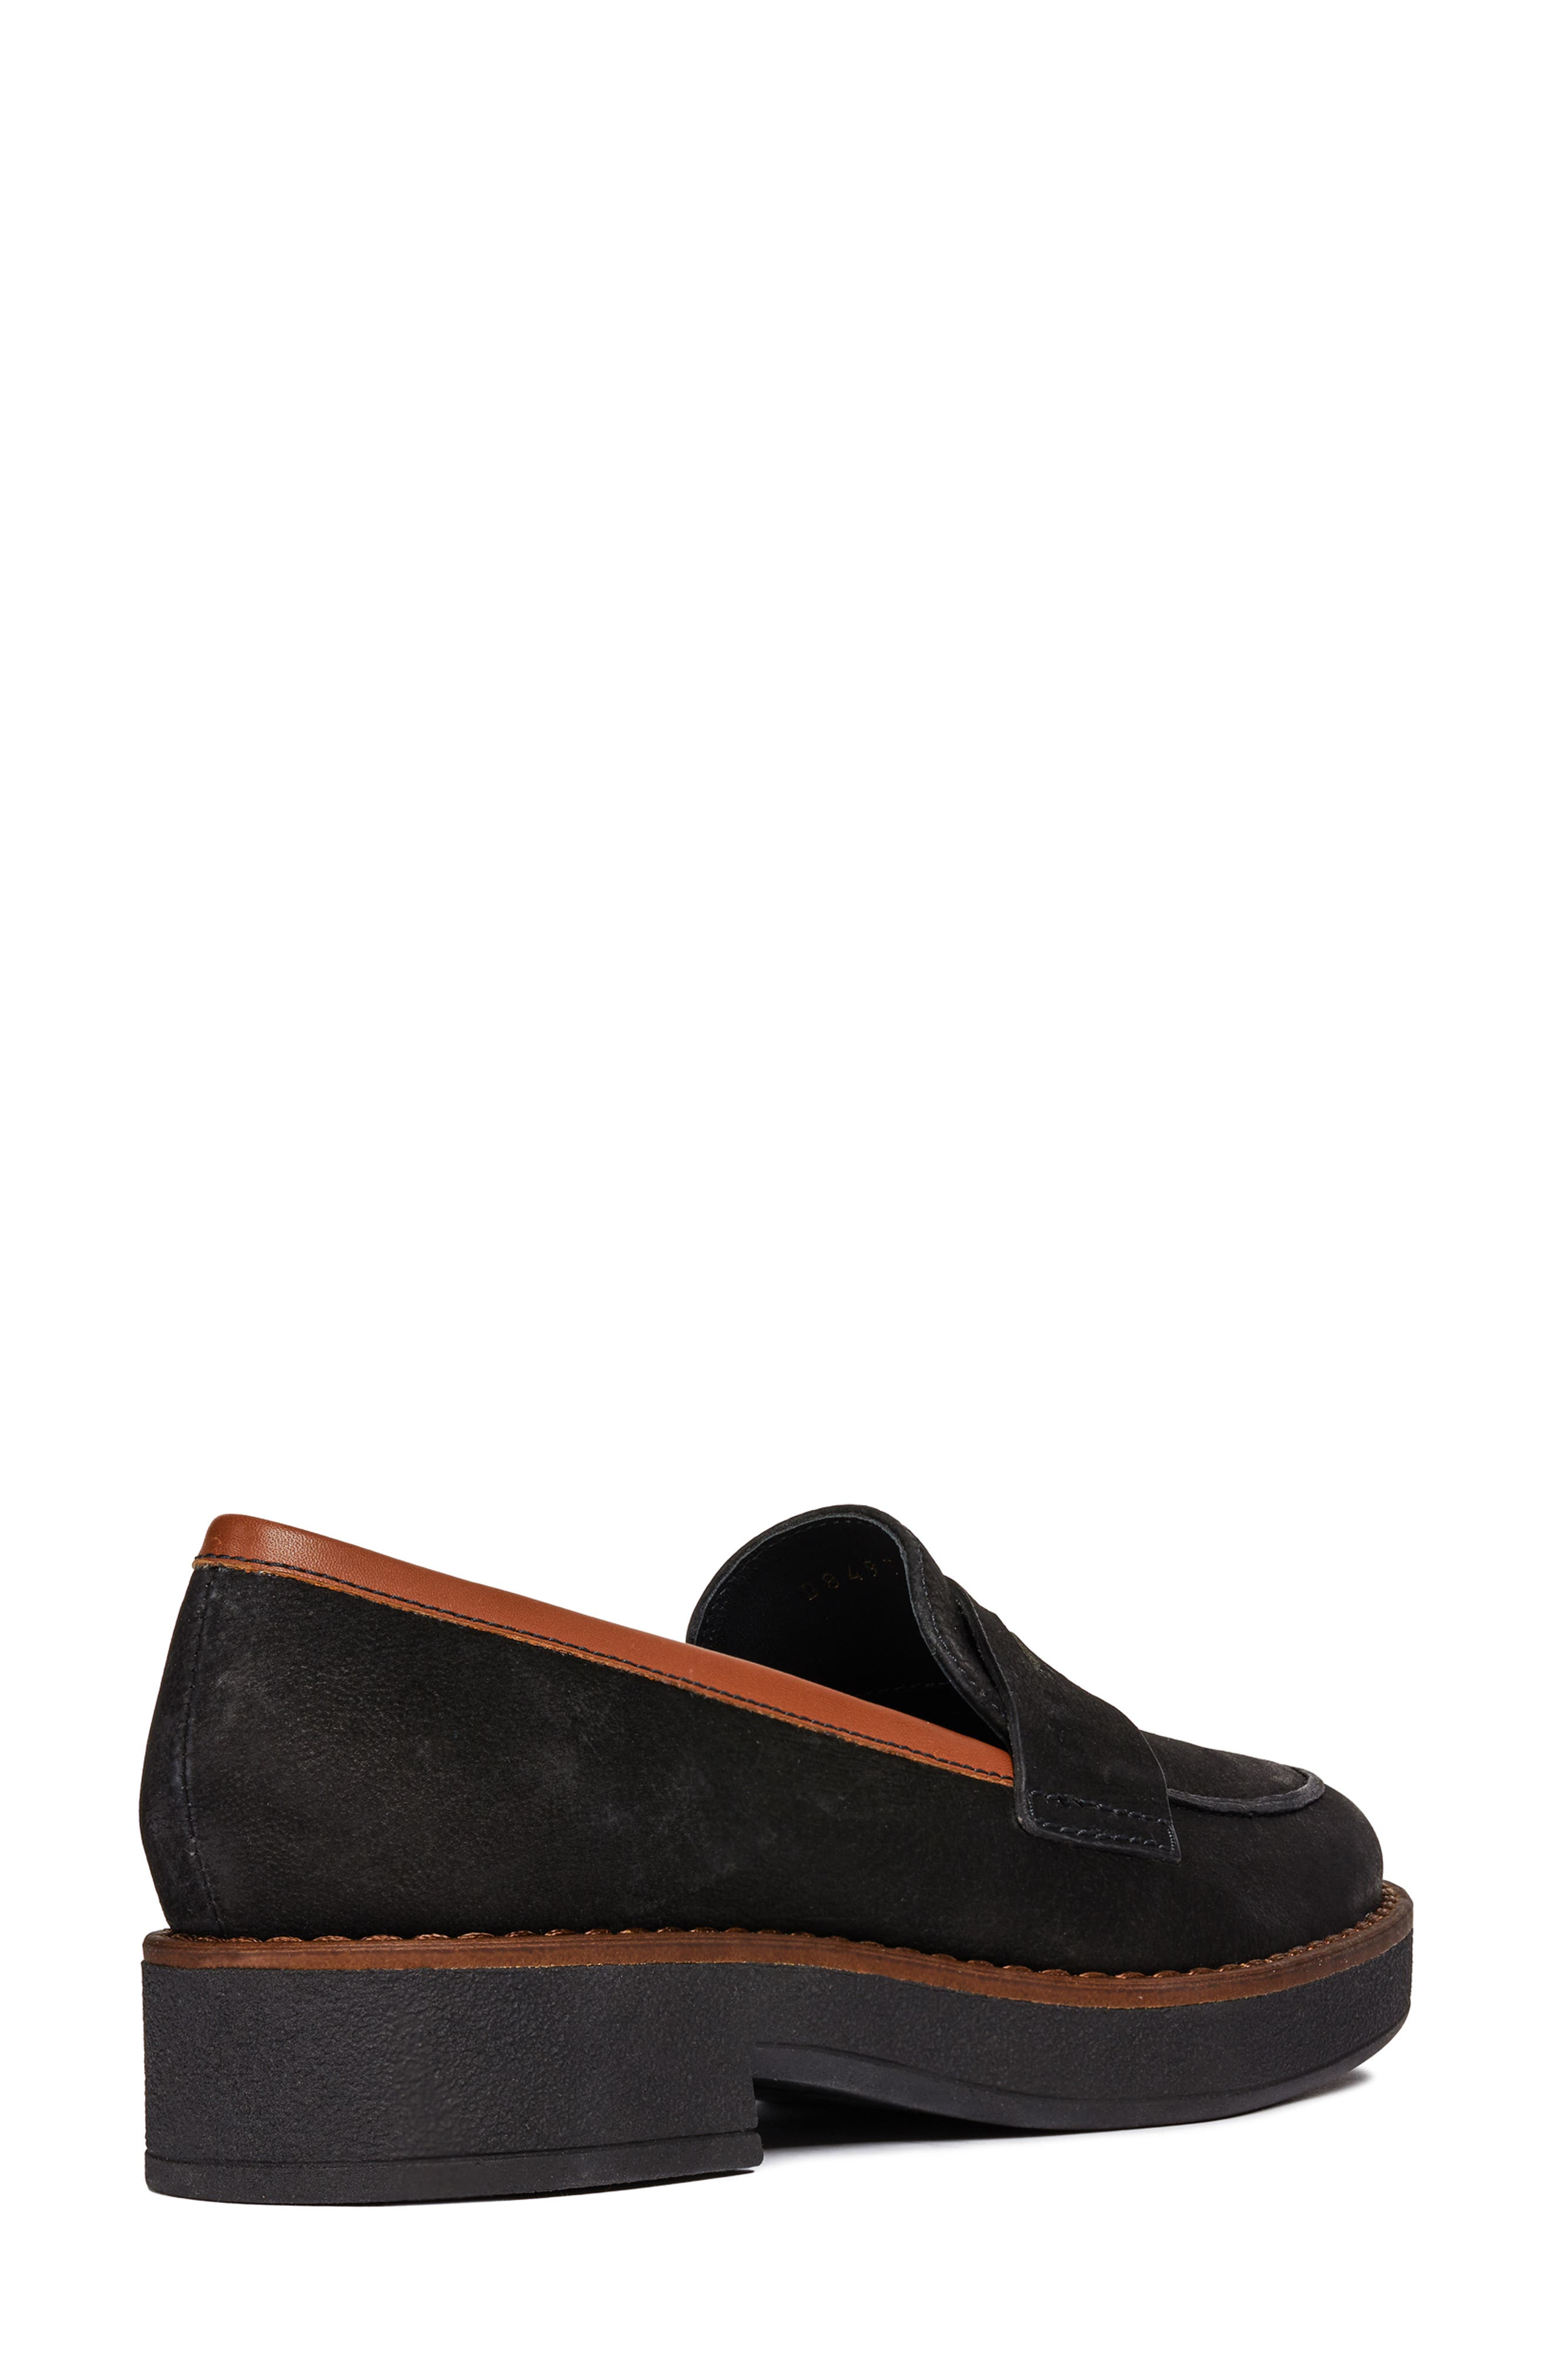 Adrya Loafer,                             Alternate thumbnail 6, color,                             BLACK/ BROWN NUBUCK LEATHER